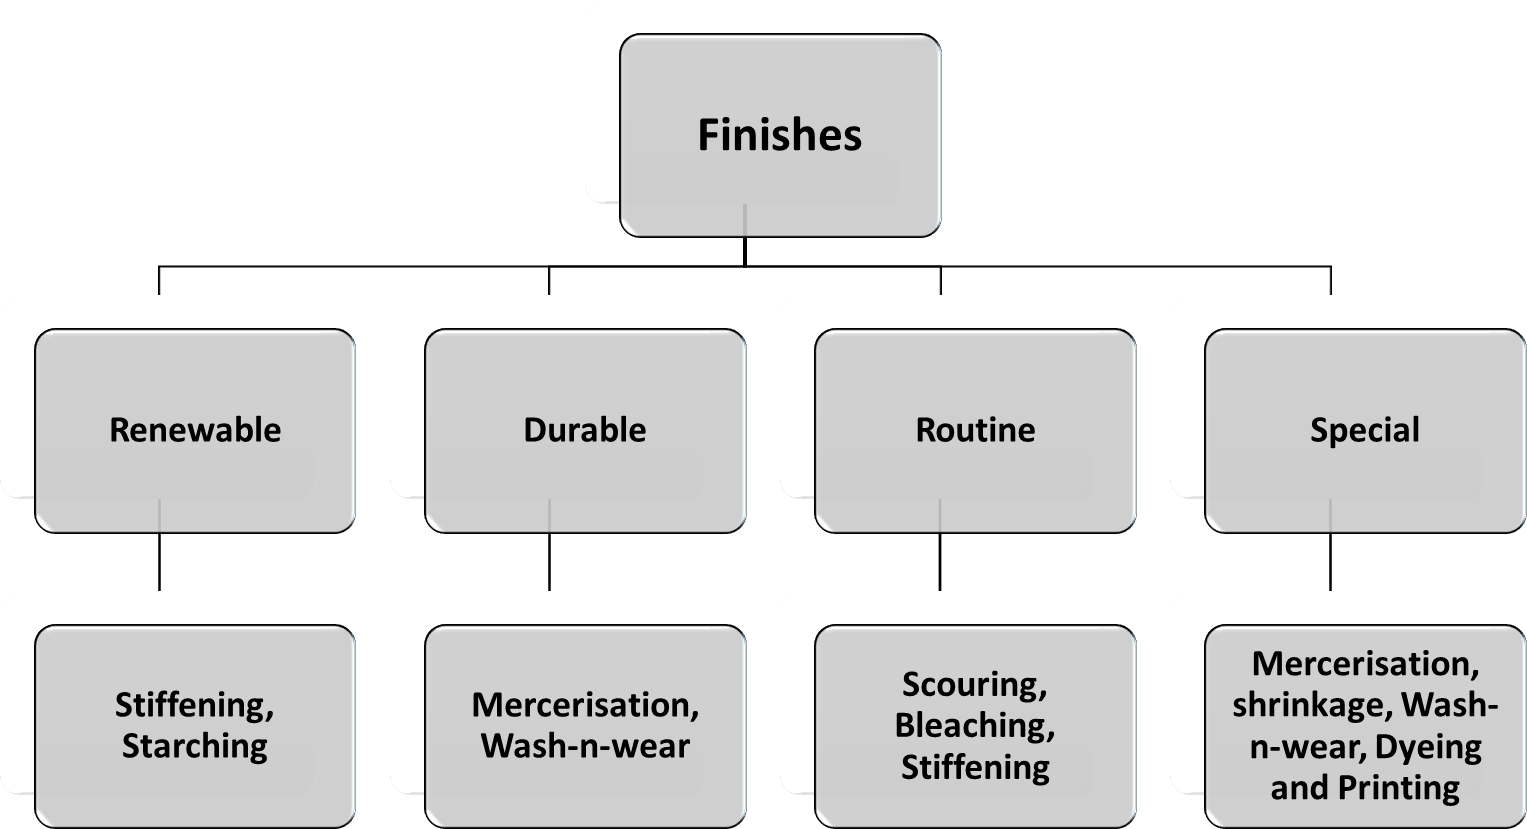 Image of Classification of Finishes